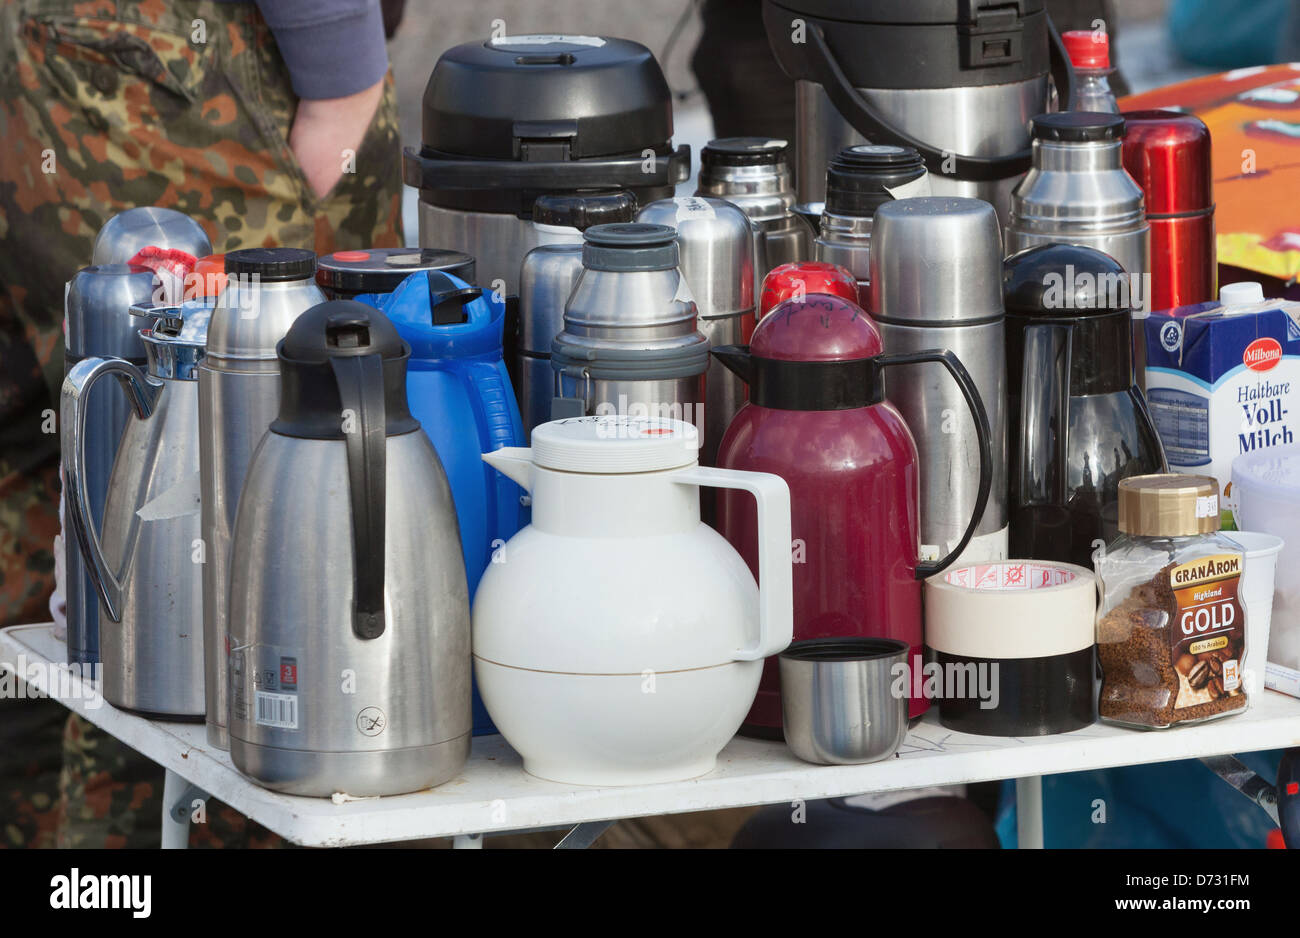 Berlin, Germany, thermos flasks during the Refugee hunger strike - Stock Image